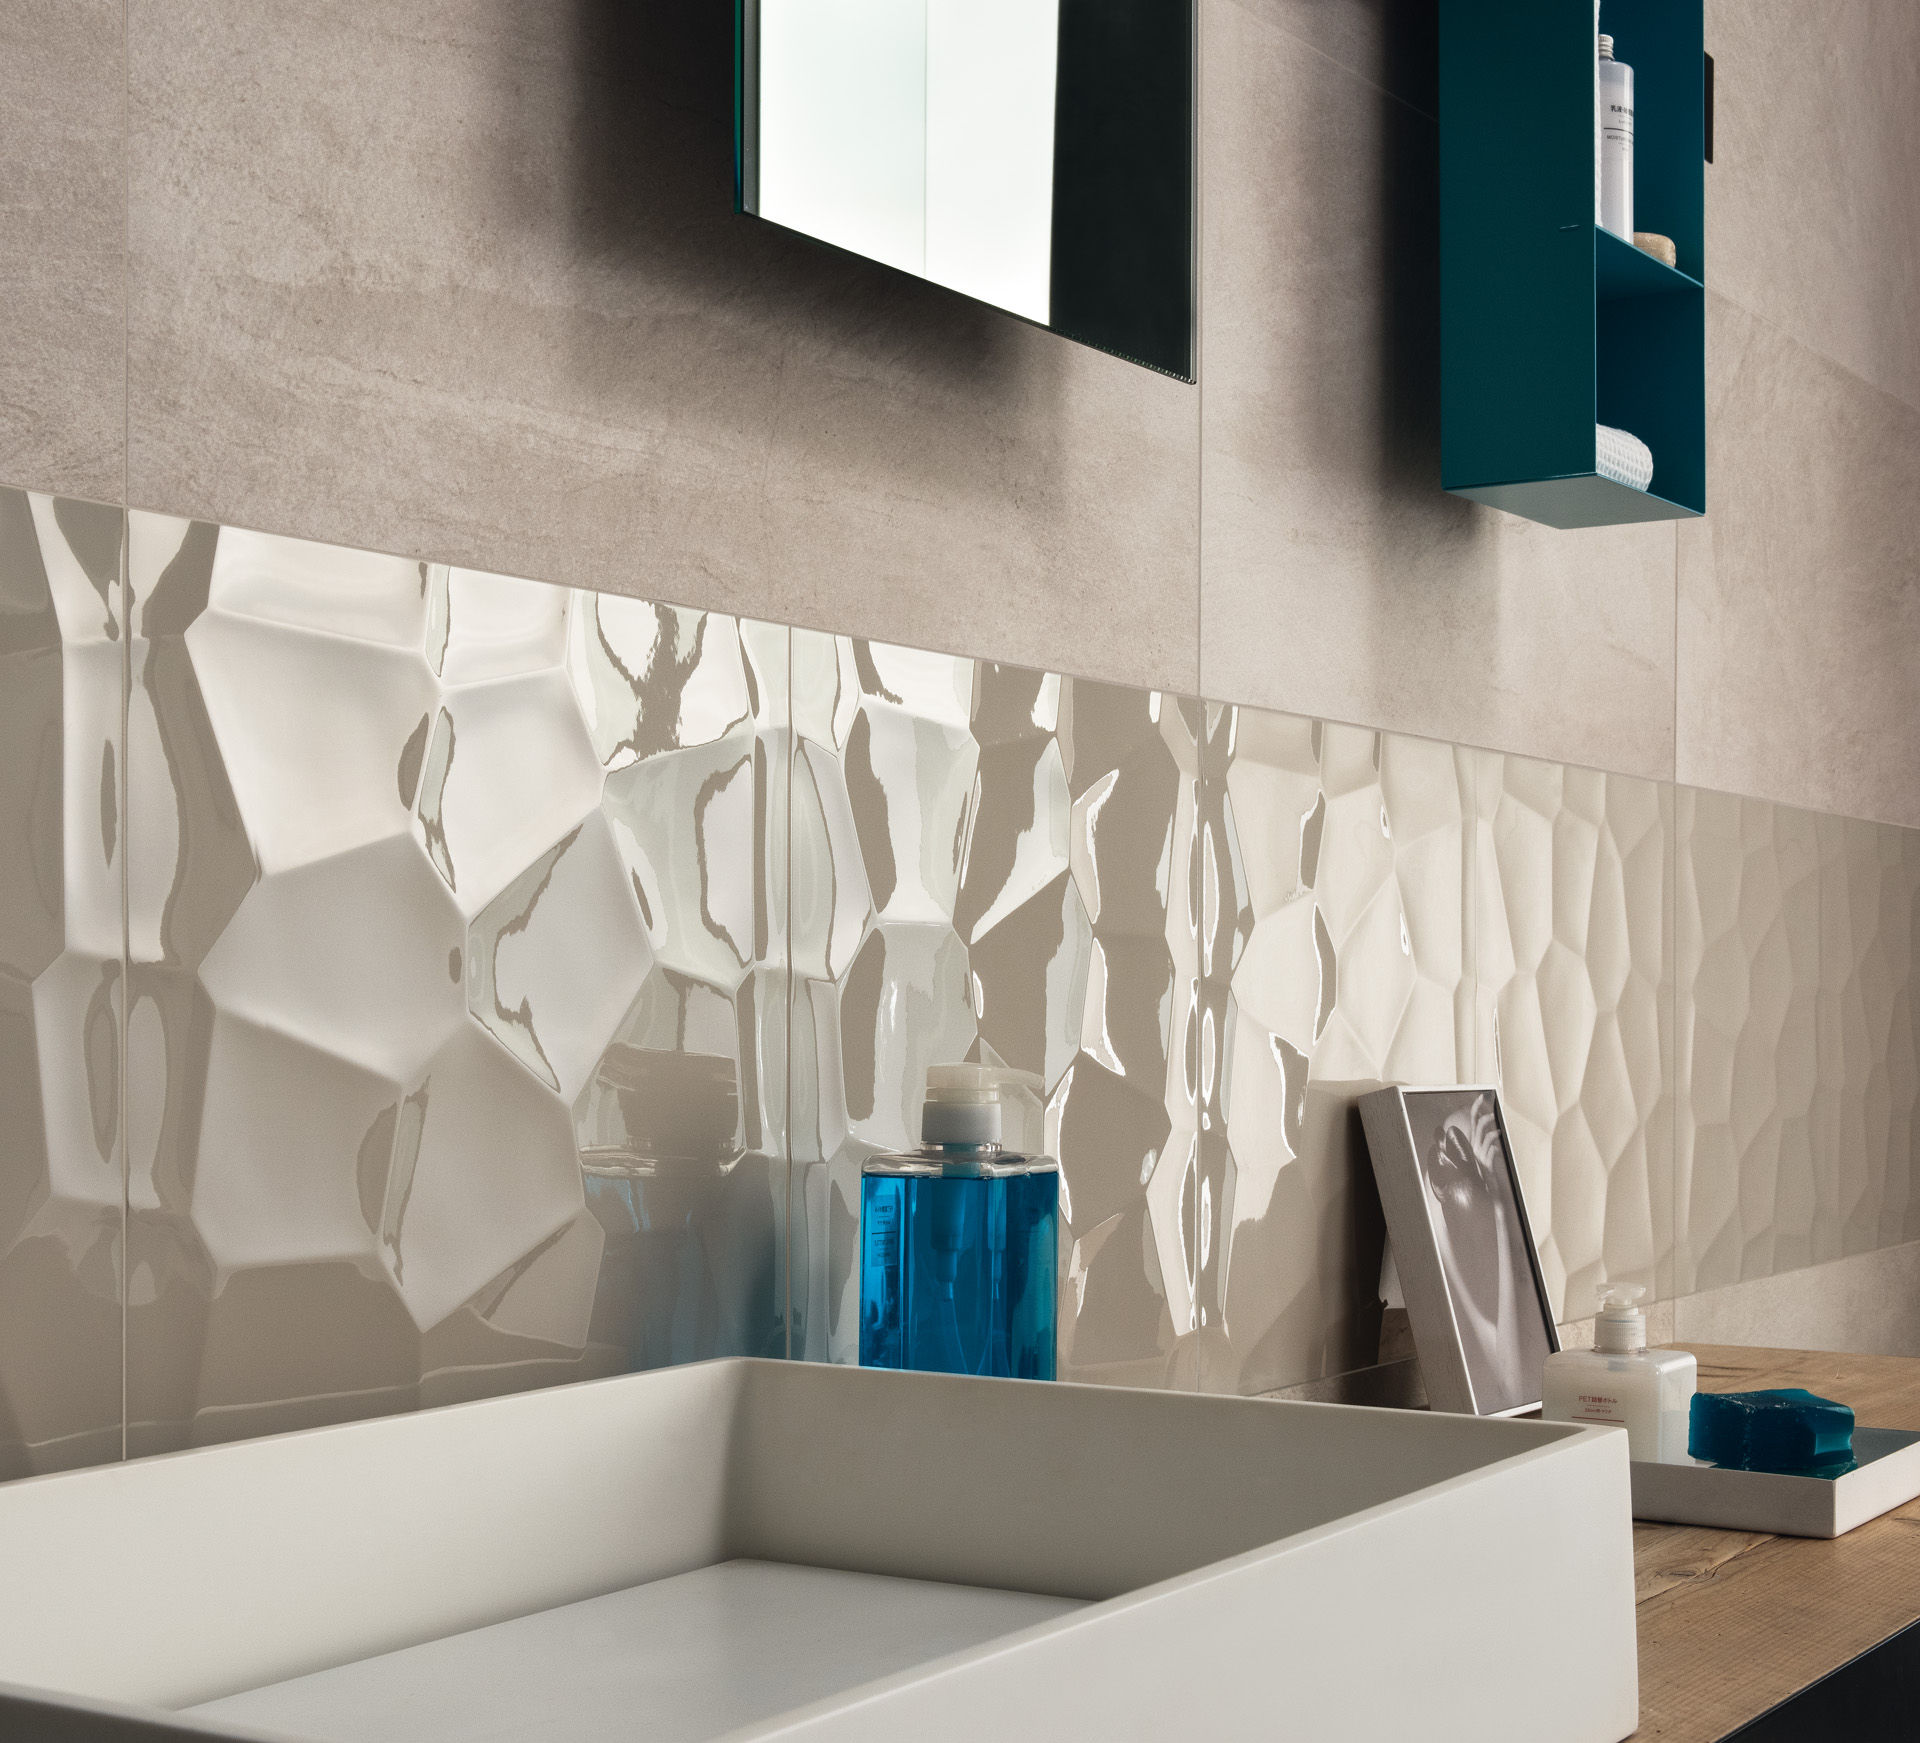 Bagno Tiles Ceramiche Gardenia Orchidea Ceramic Tiles Floor And Wall